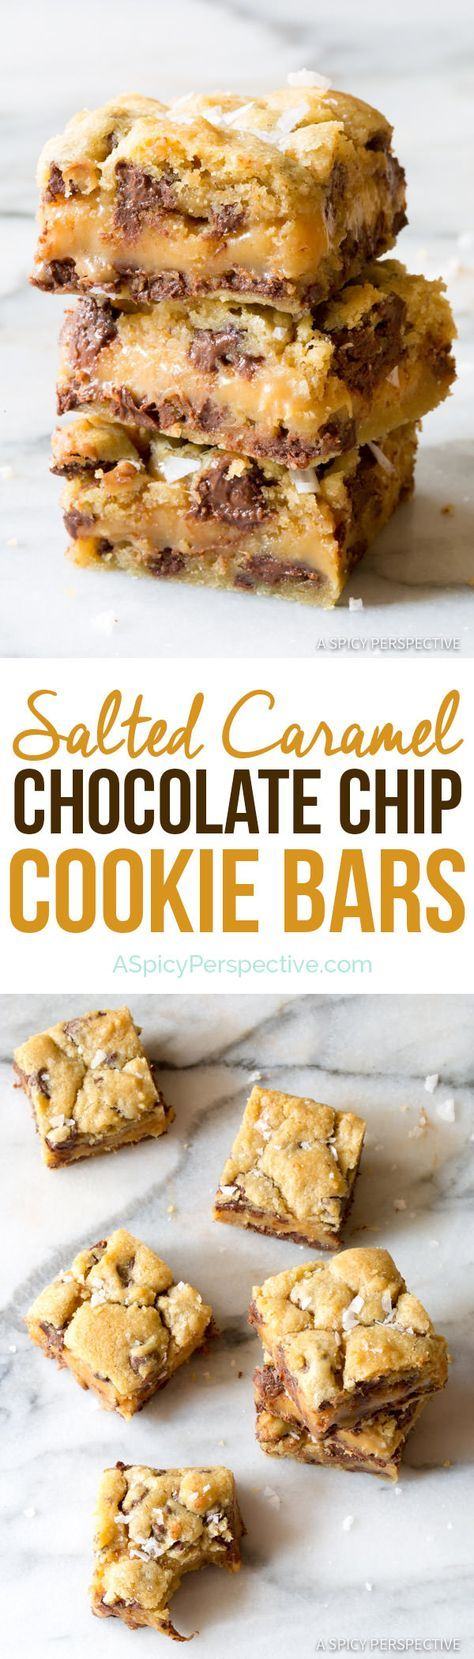 """Irresistible Gooey Salted Caramel Chocolate Chip Cookie Bars   <a href=""""http://ASpicyPerspective.com"""" rel=""""nofollow"""" target=""""_blank"""">ASpicyPerspective...</a>"""